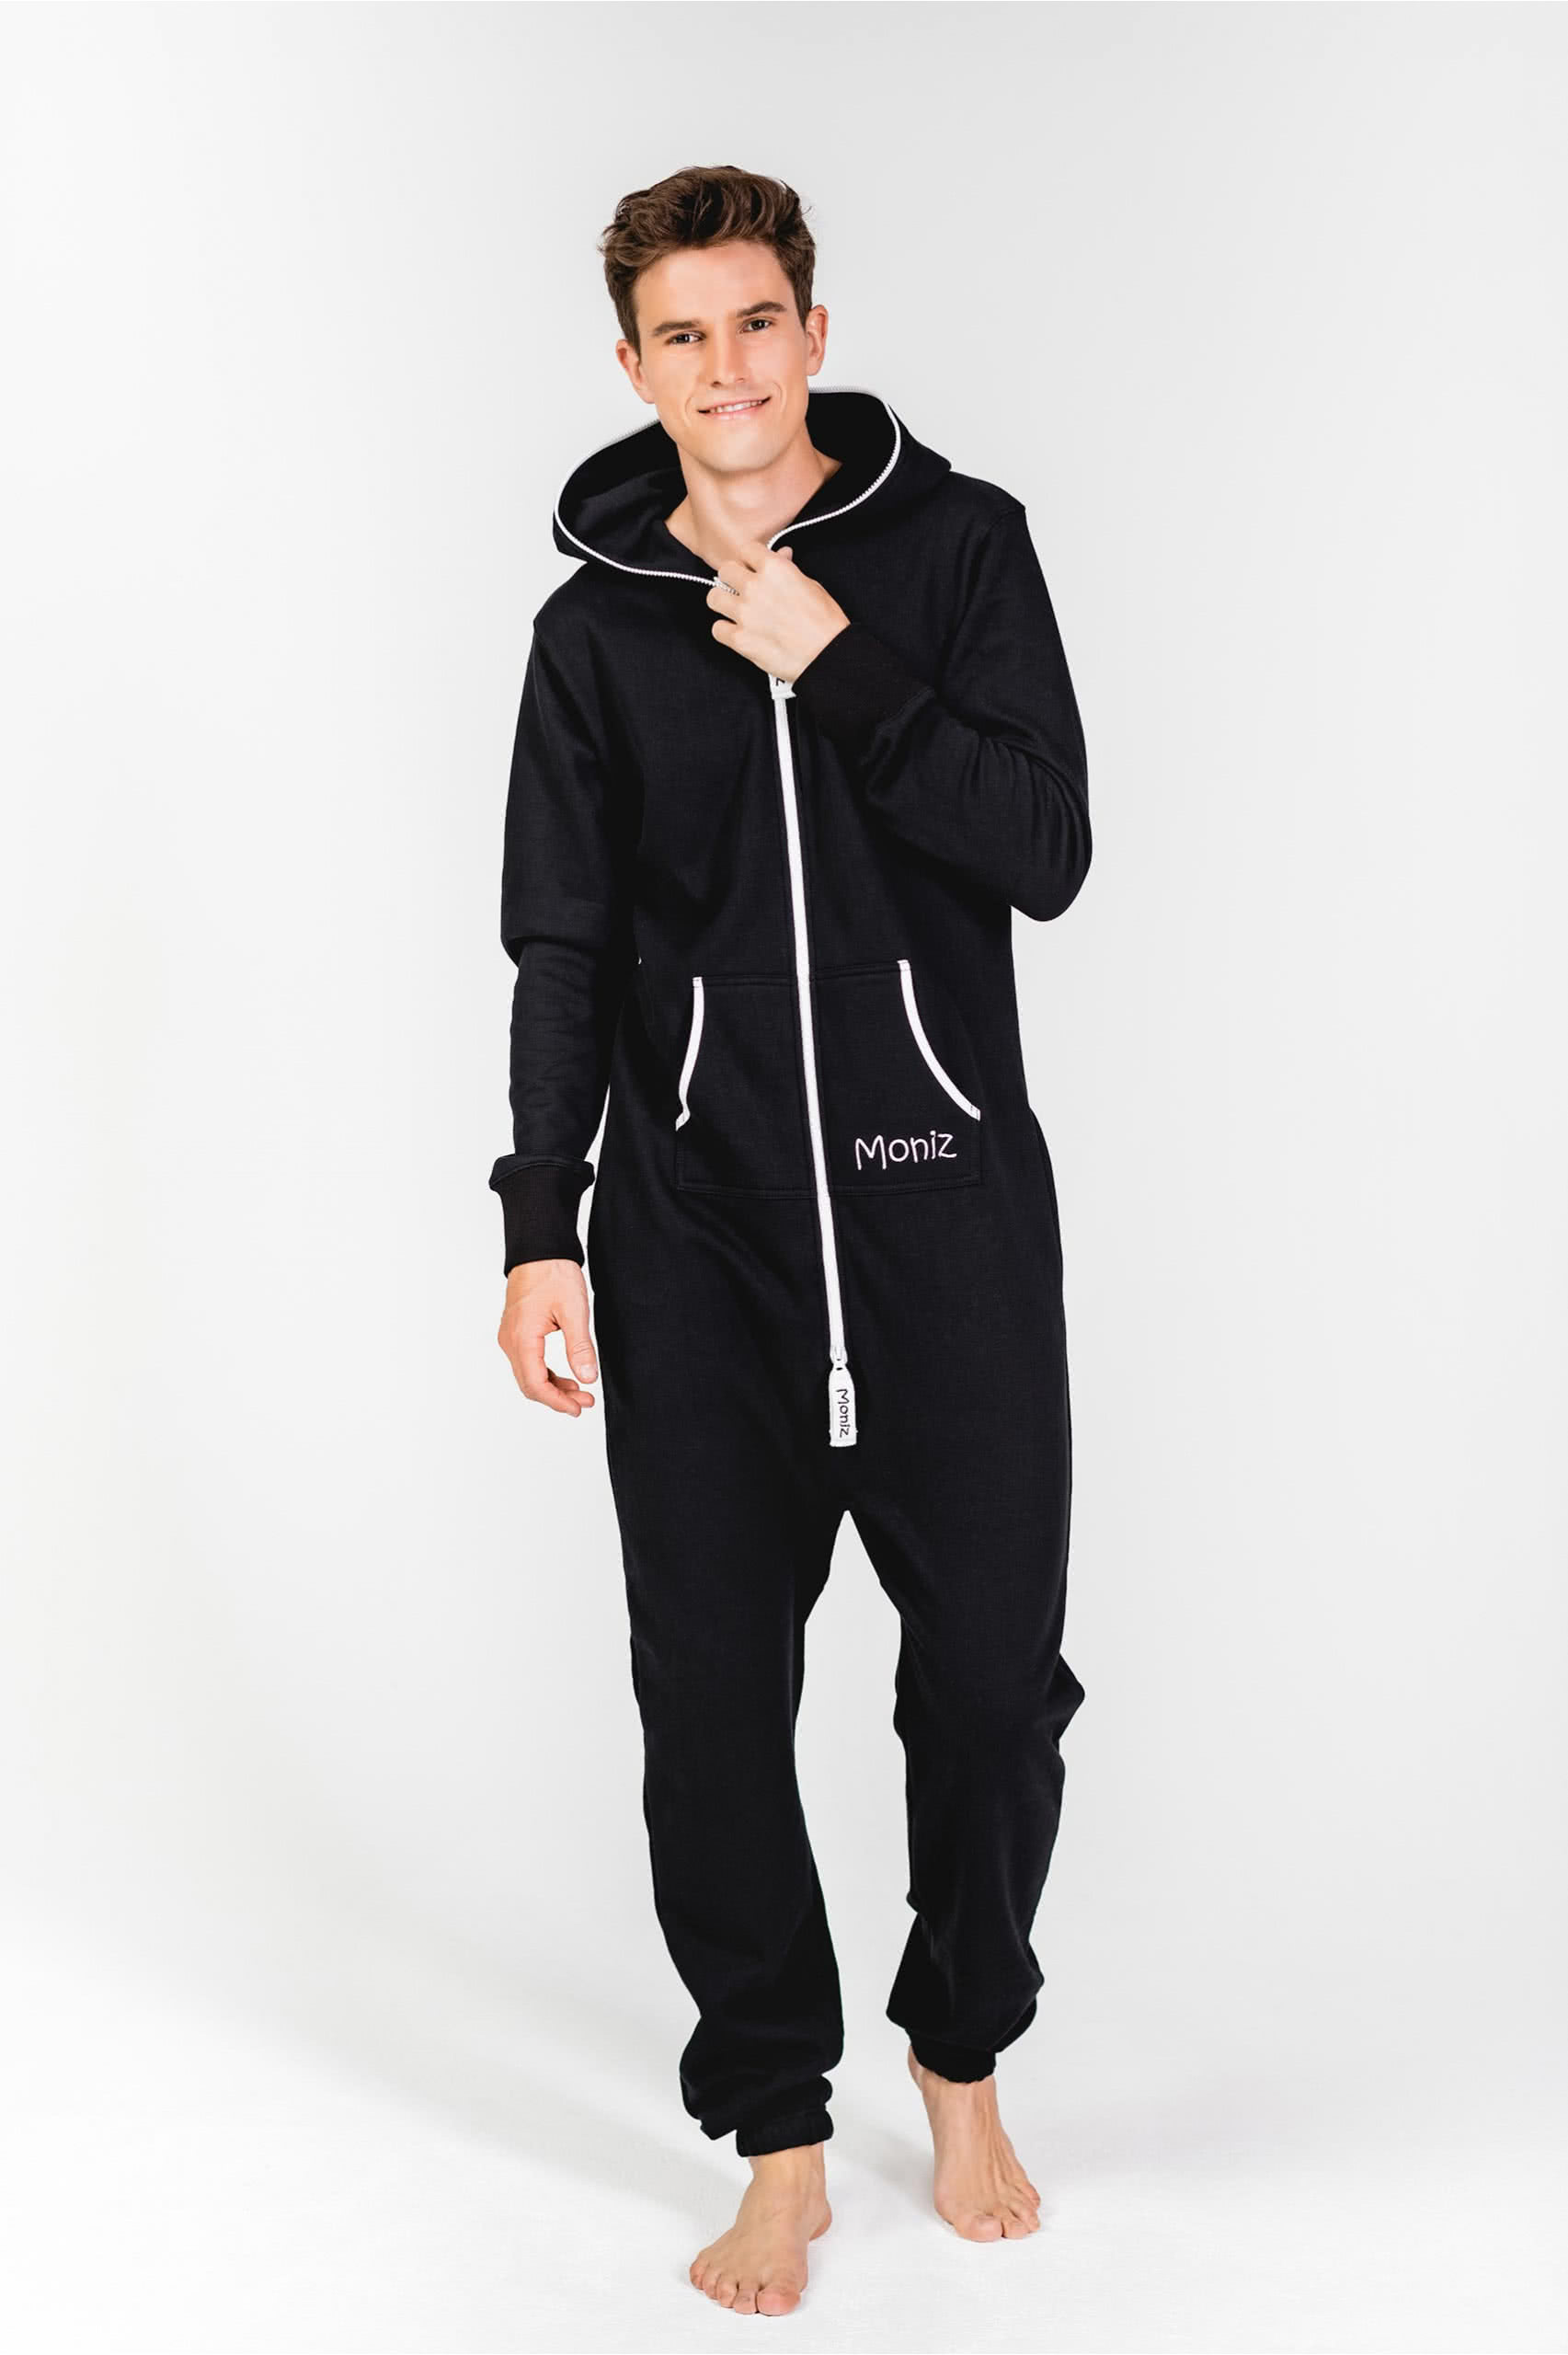 Moniz Herren Jumpsuit Schwarz - Weekend Black